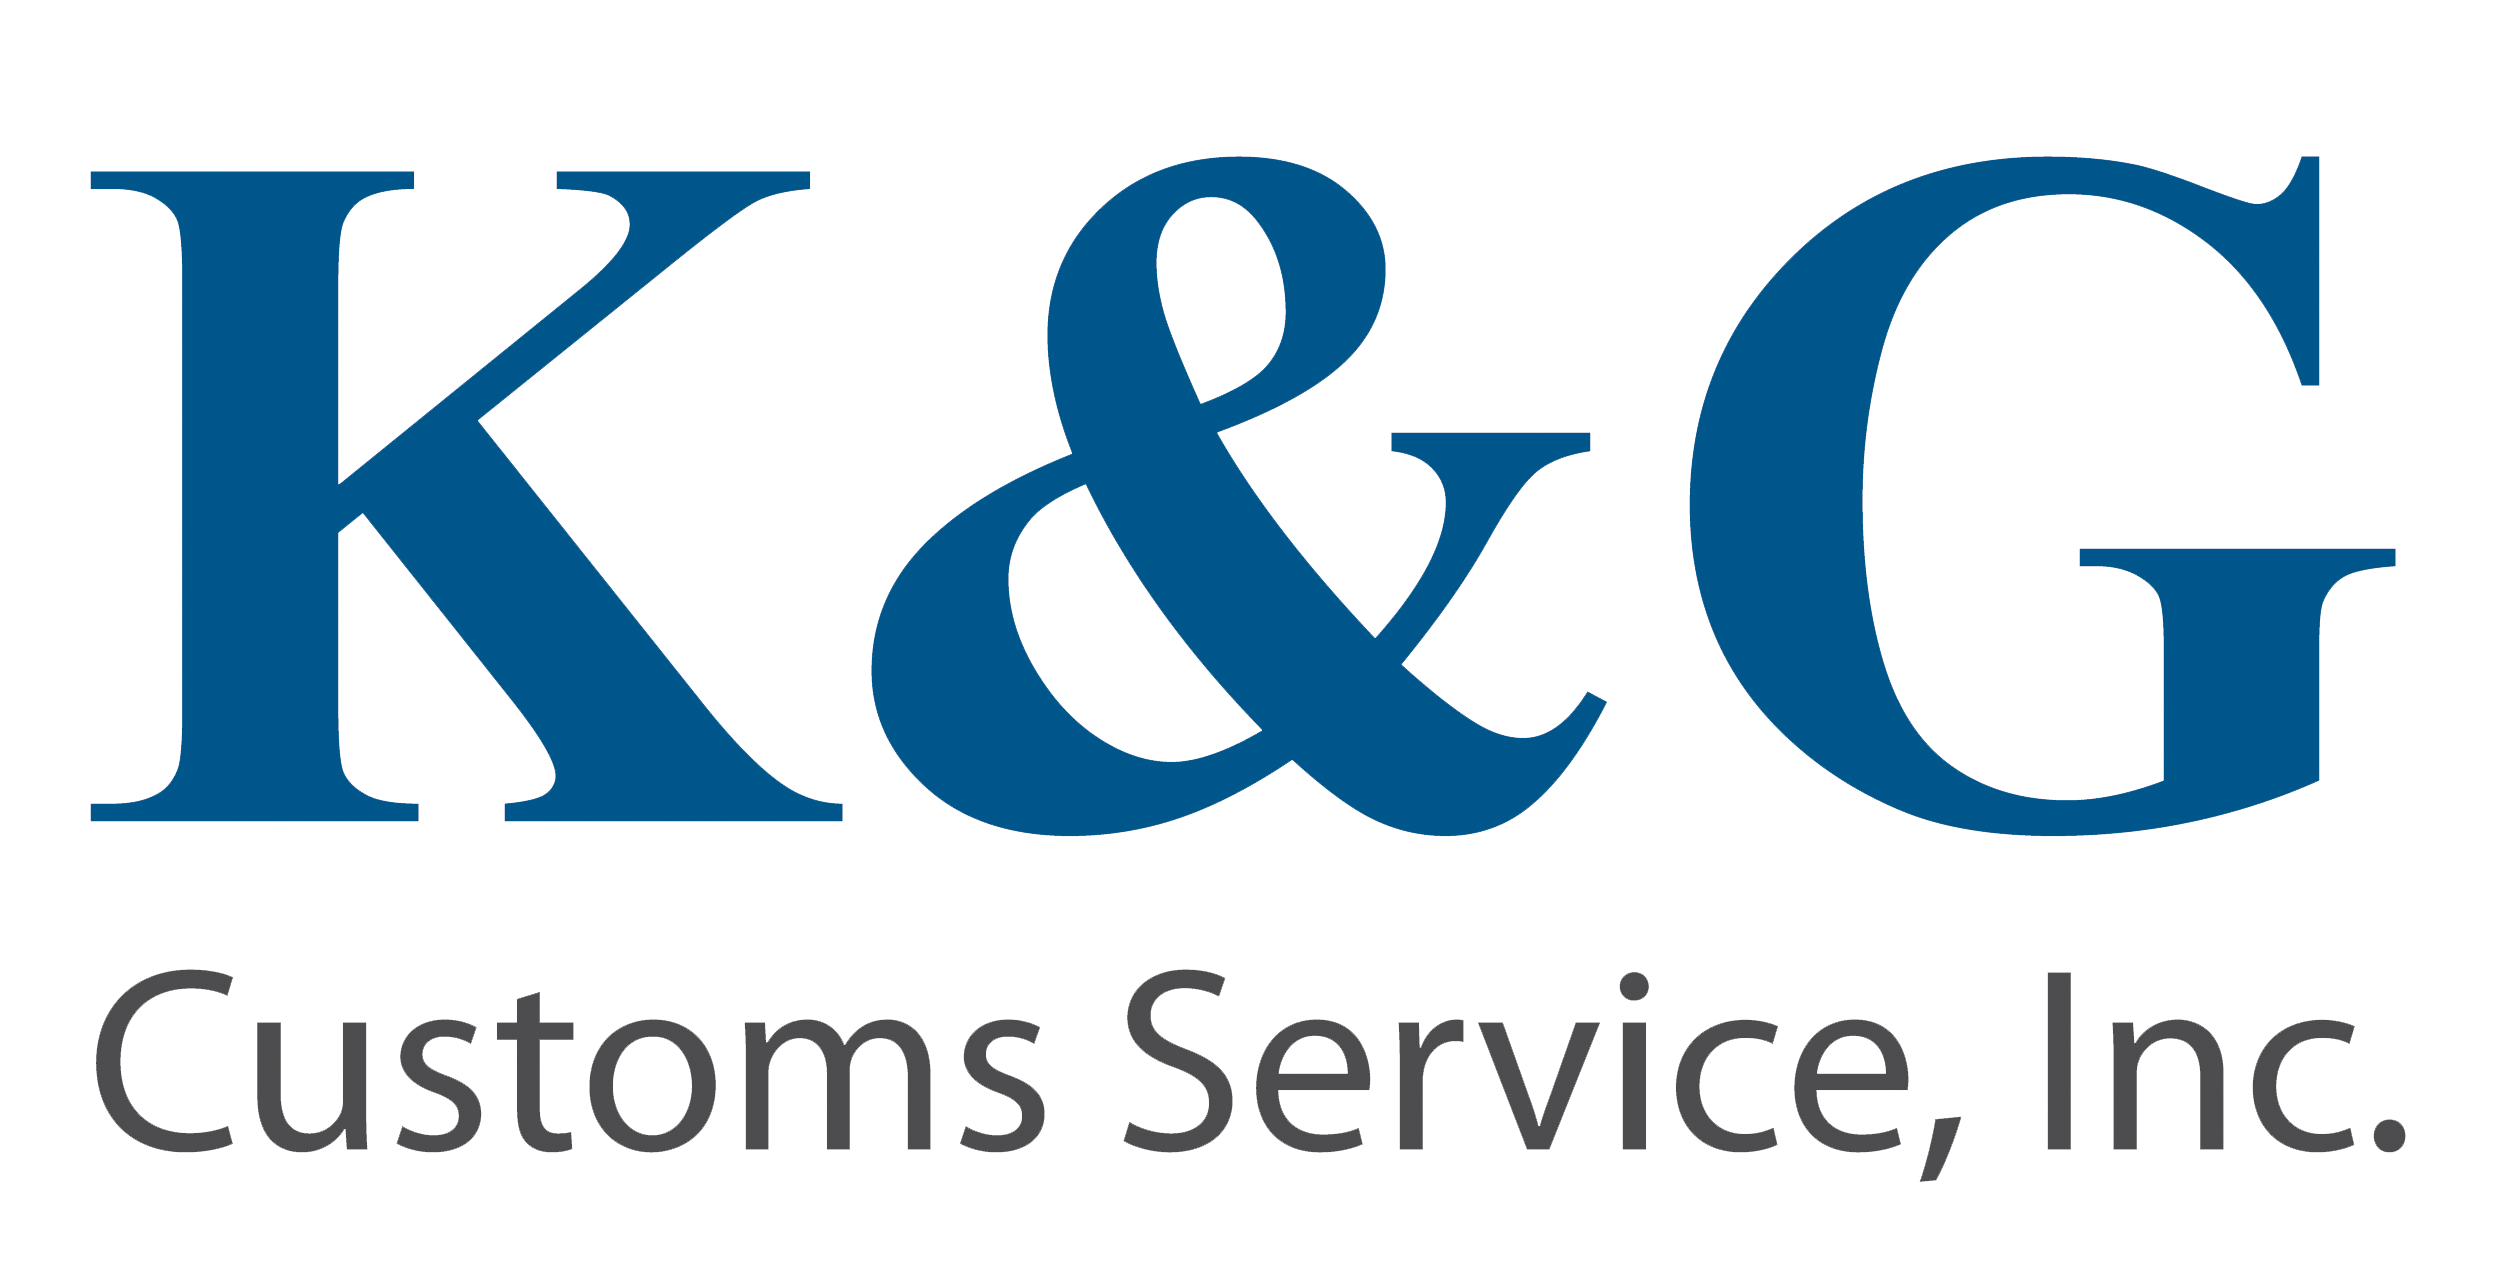 K&G CUSTOMS SERVICE INC